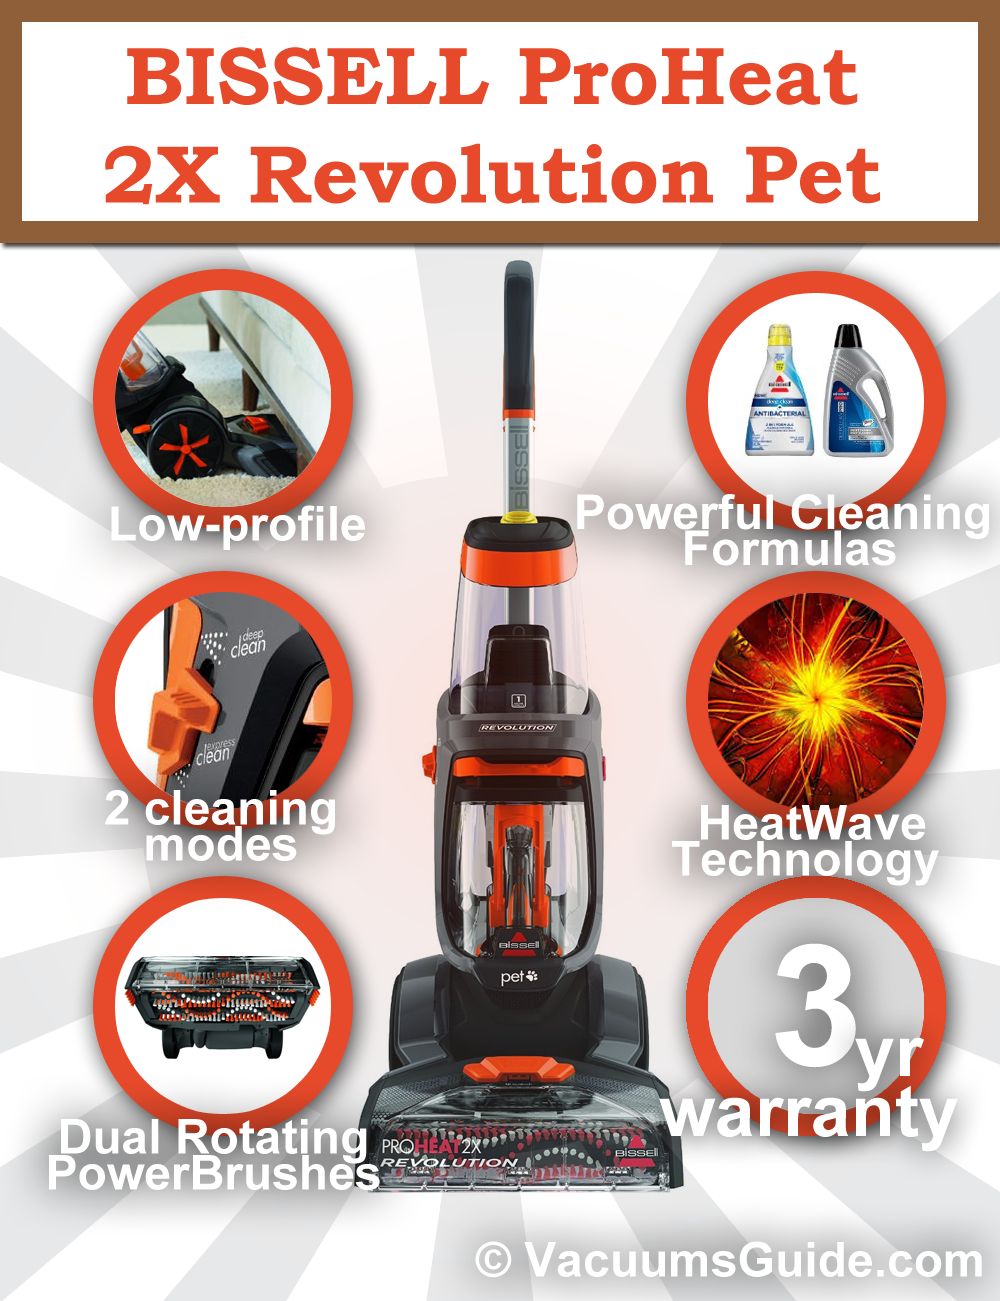 Bissell Proheat 2x Revolution Pet 1548t Target Carpet Manual Guide